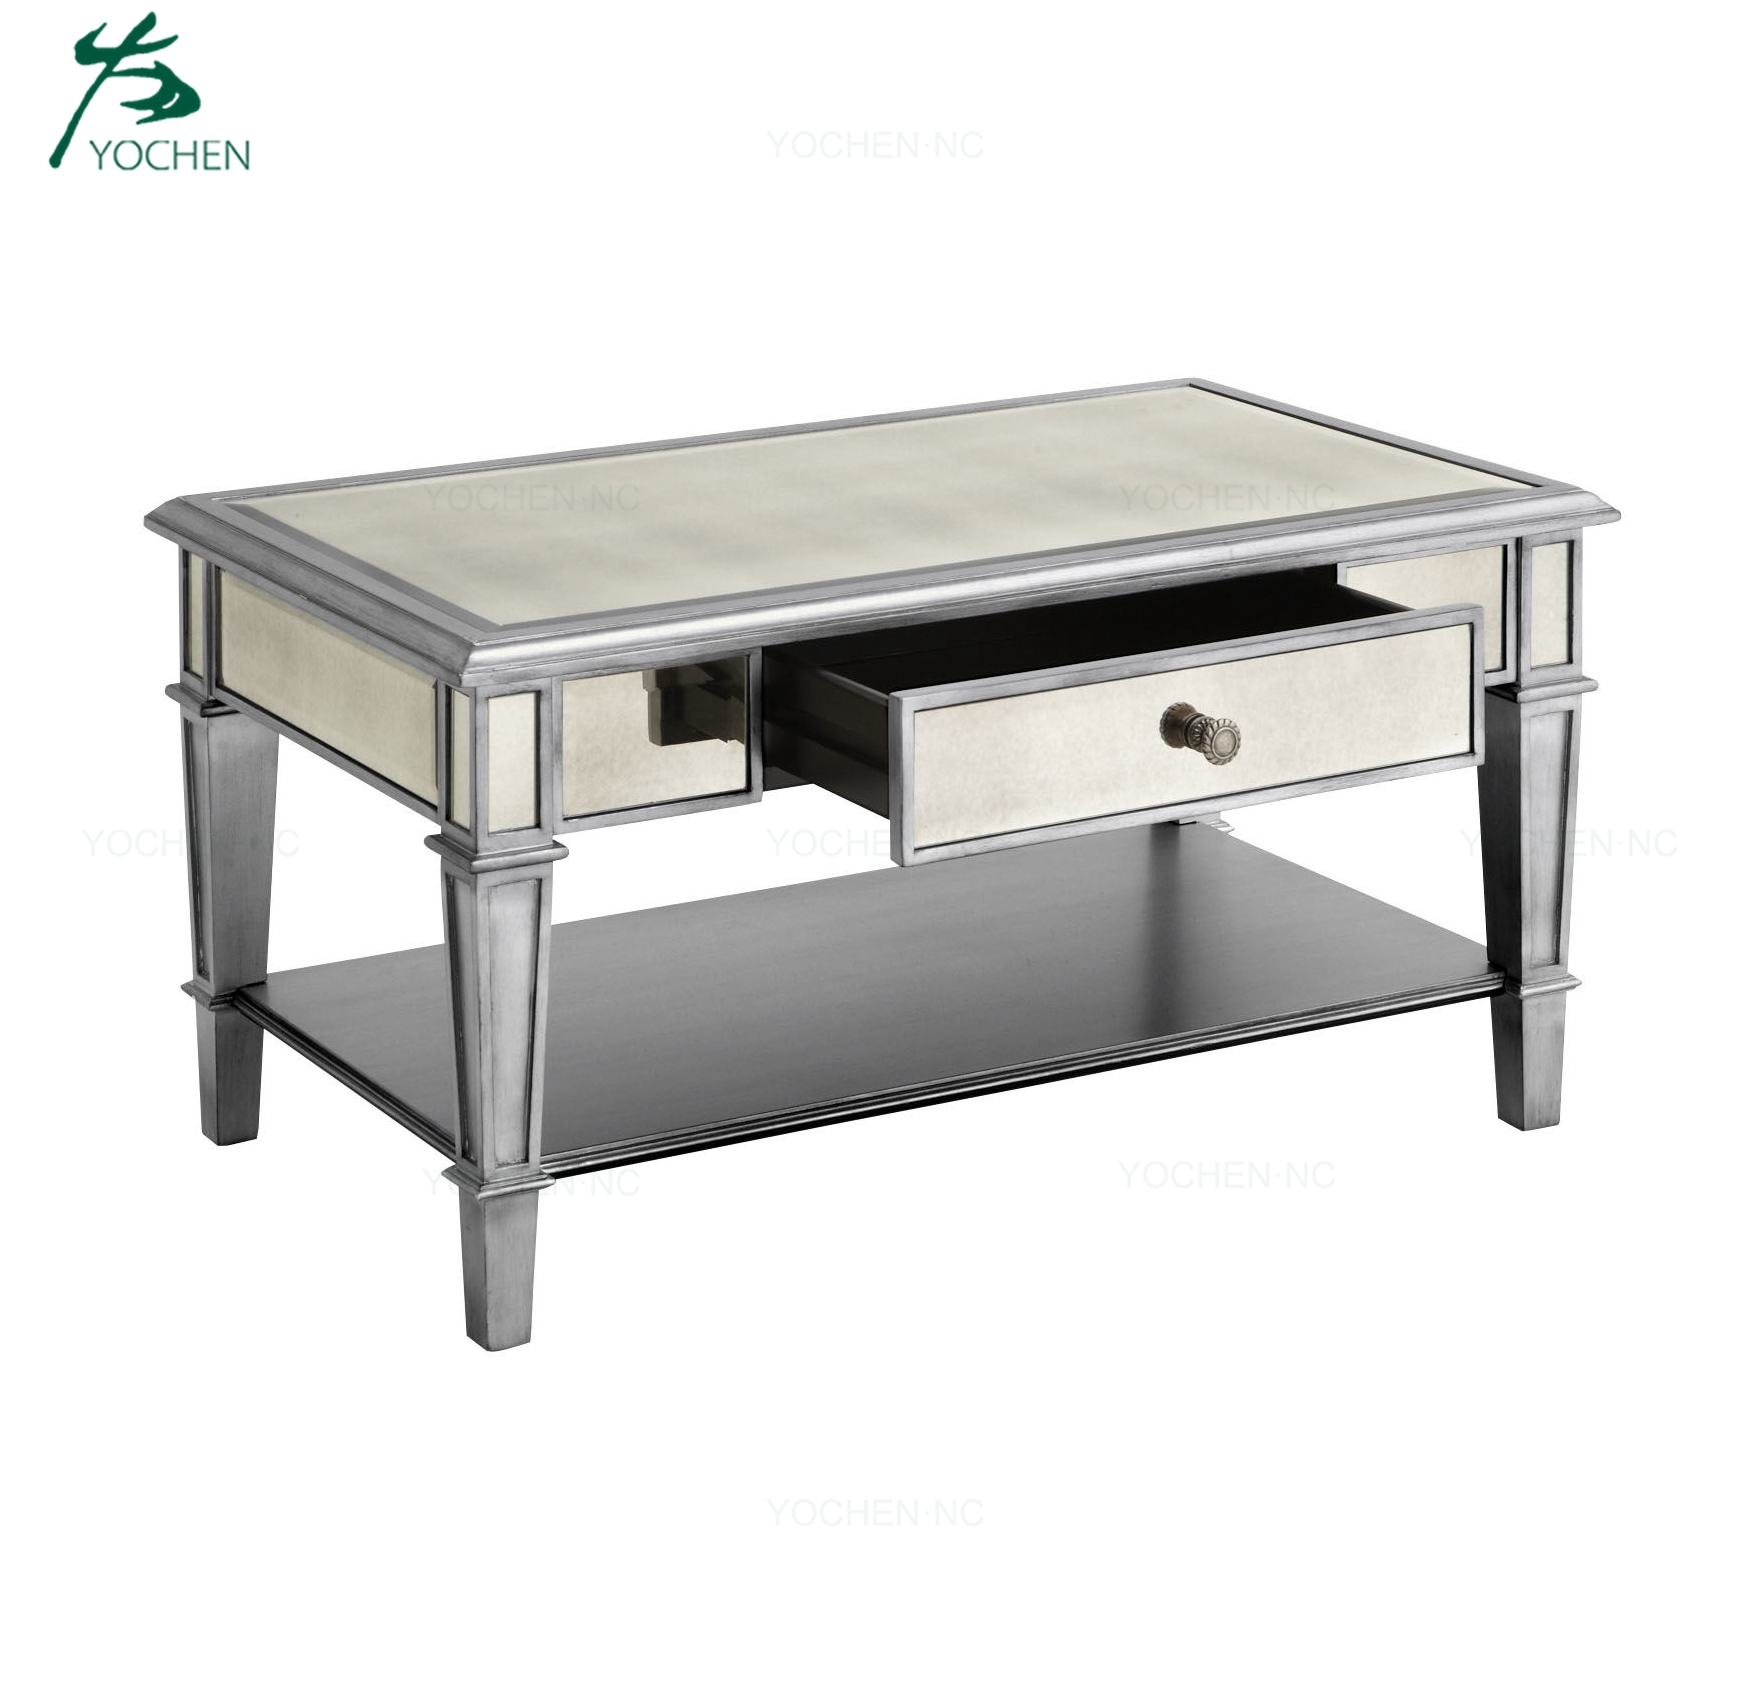 mirrored furniture import furniture from china round glass coffee table